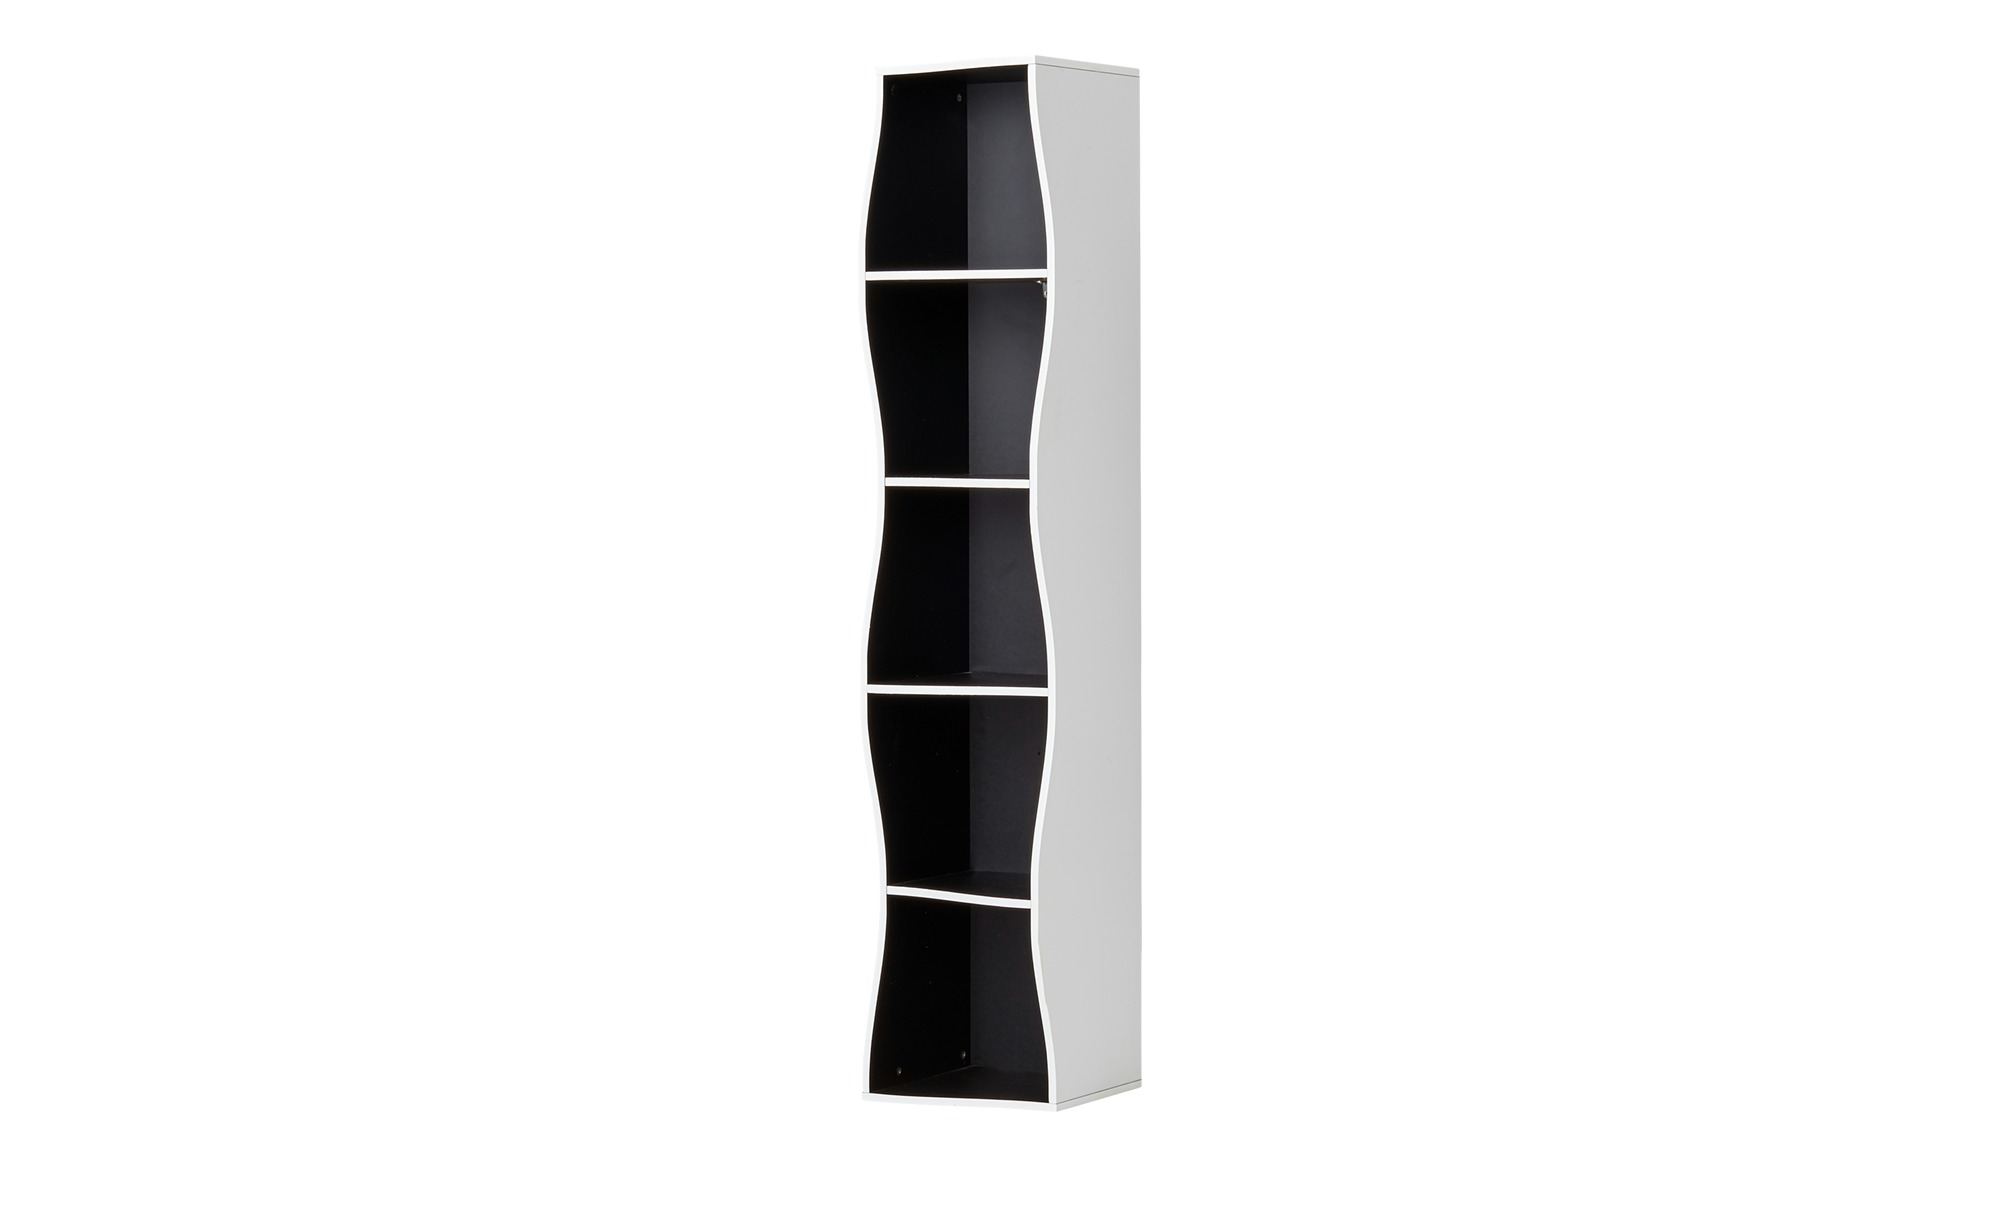 regal curve breite 30 cm h he 150 cm mehrfarbig online. Black Bedroom Furniture Sets. Home Design Ideas